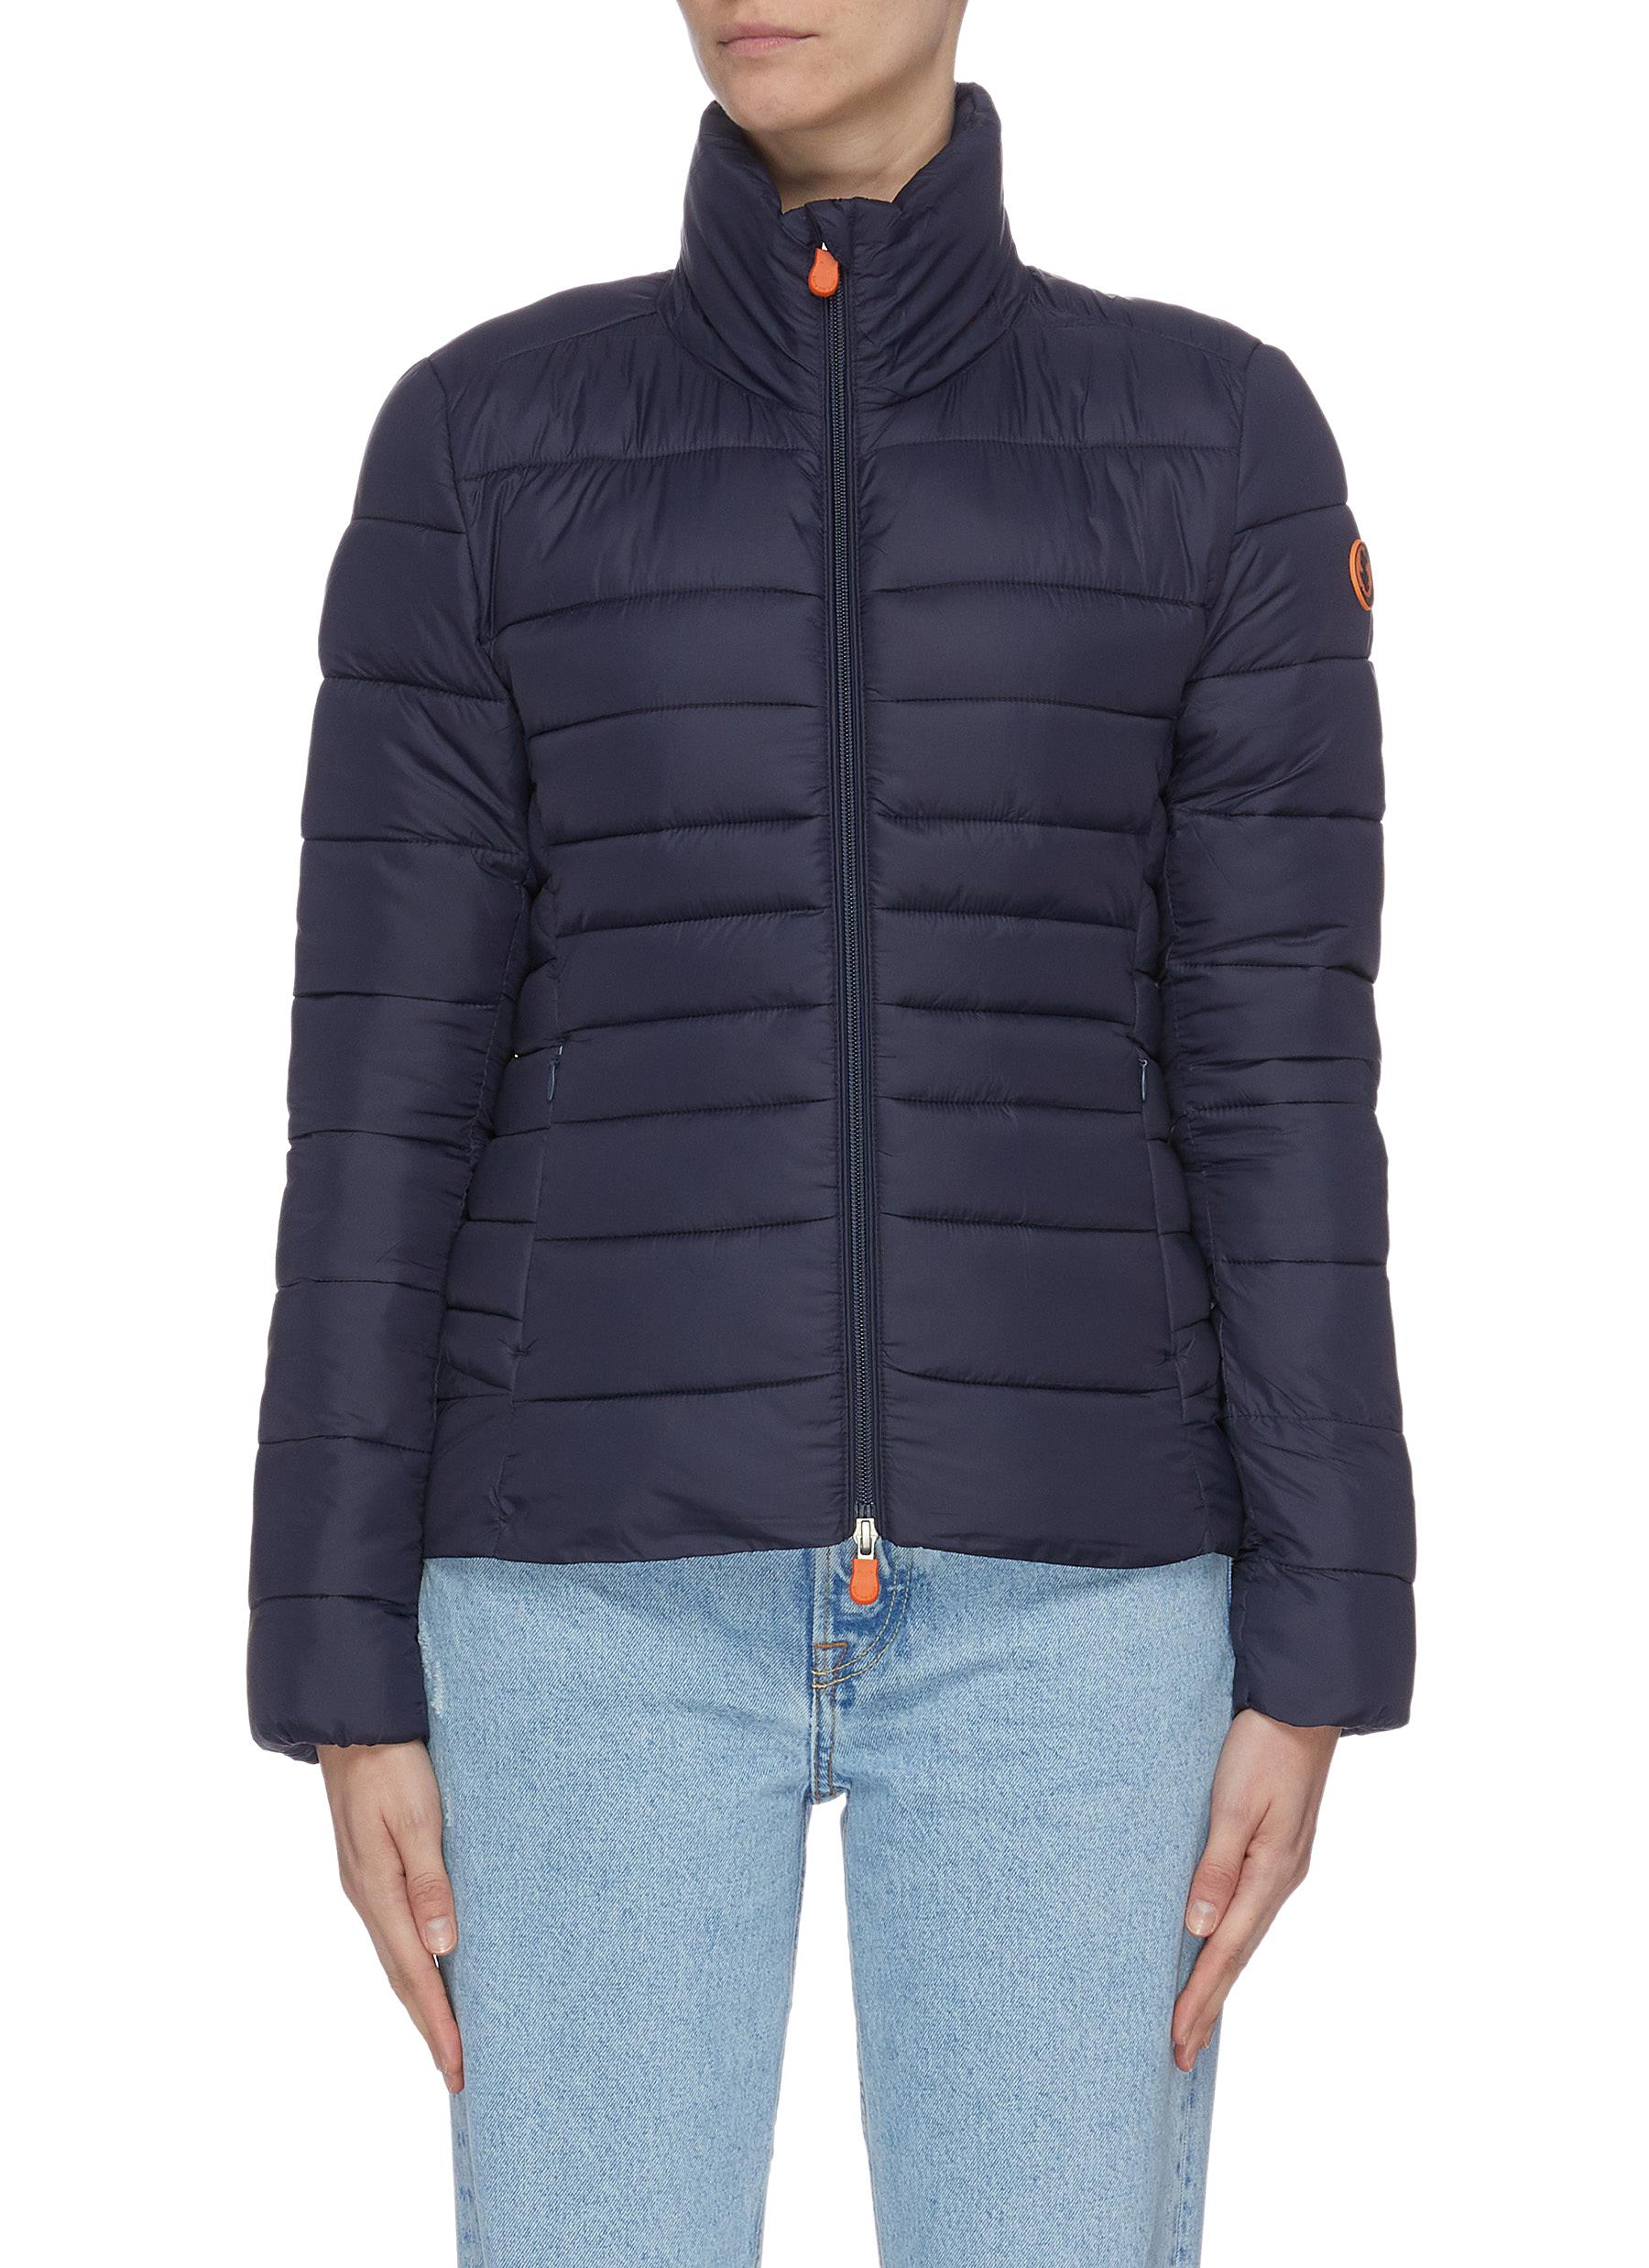 Classic hooded puffer jacket by Save The Duck